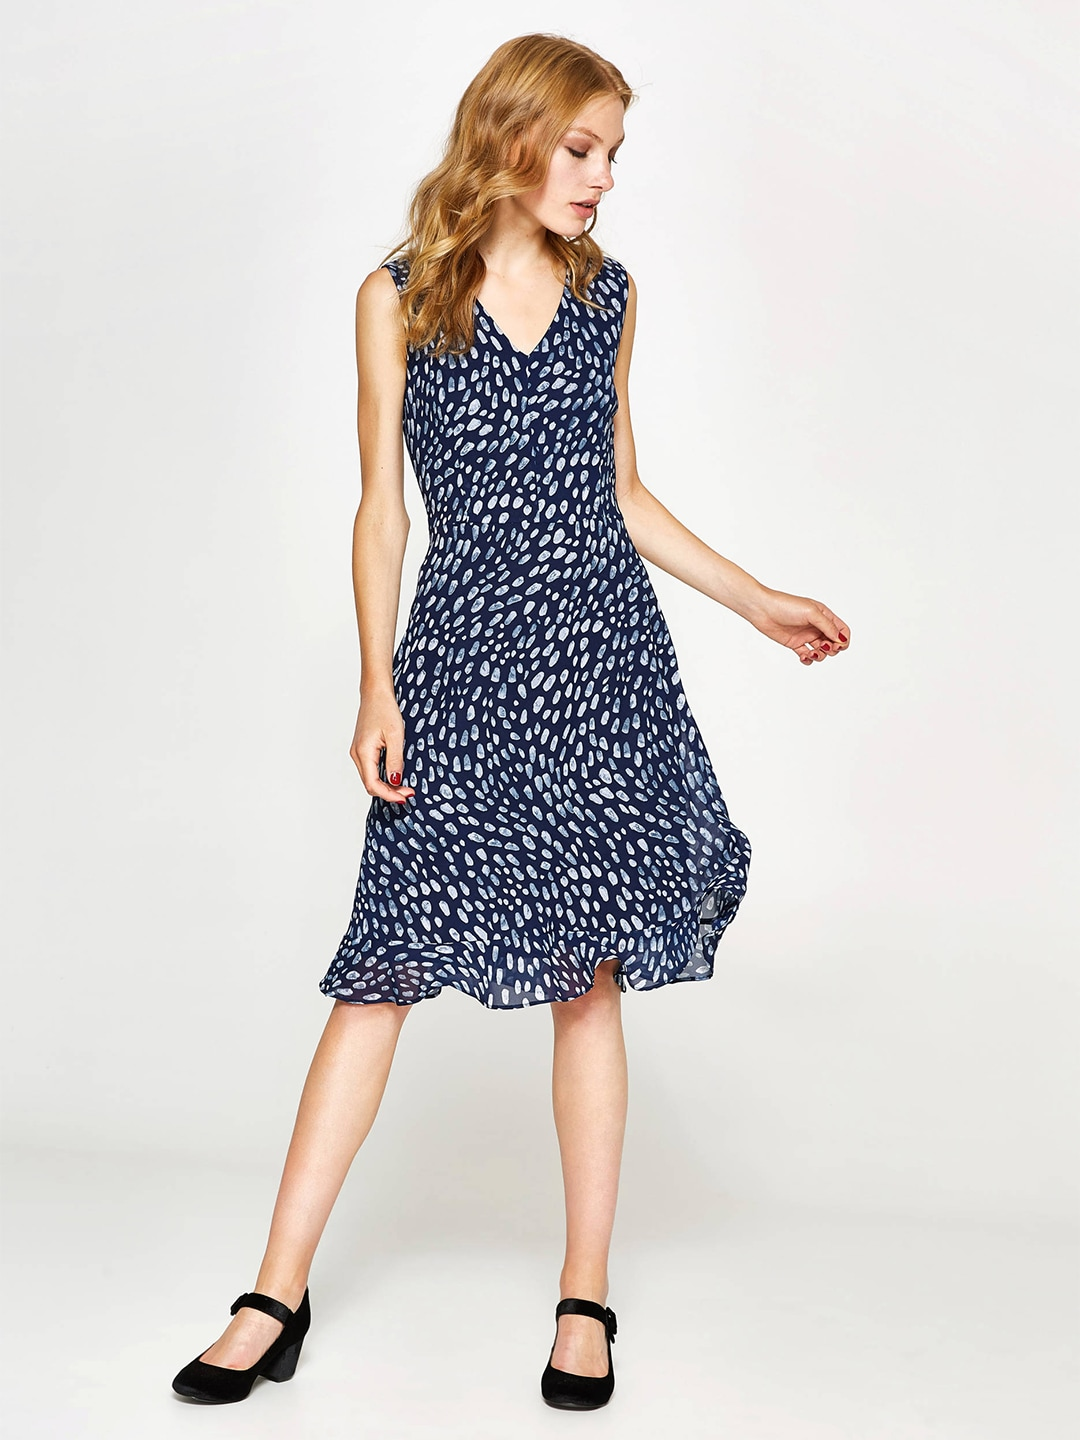 OVS Women Navy Blue Printed Fit & Flare Dress image